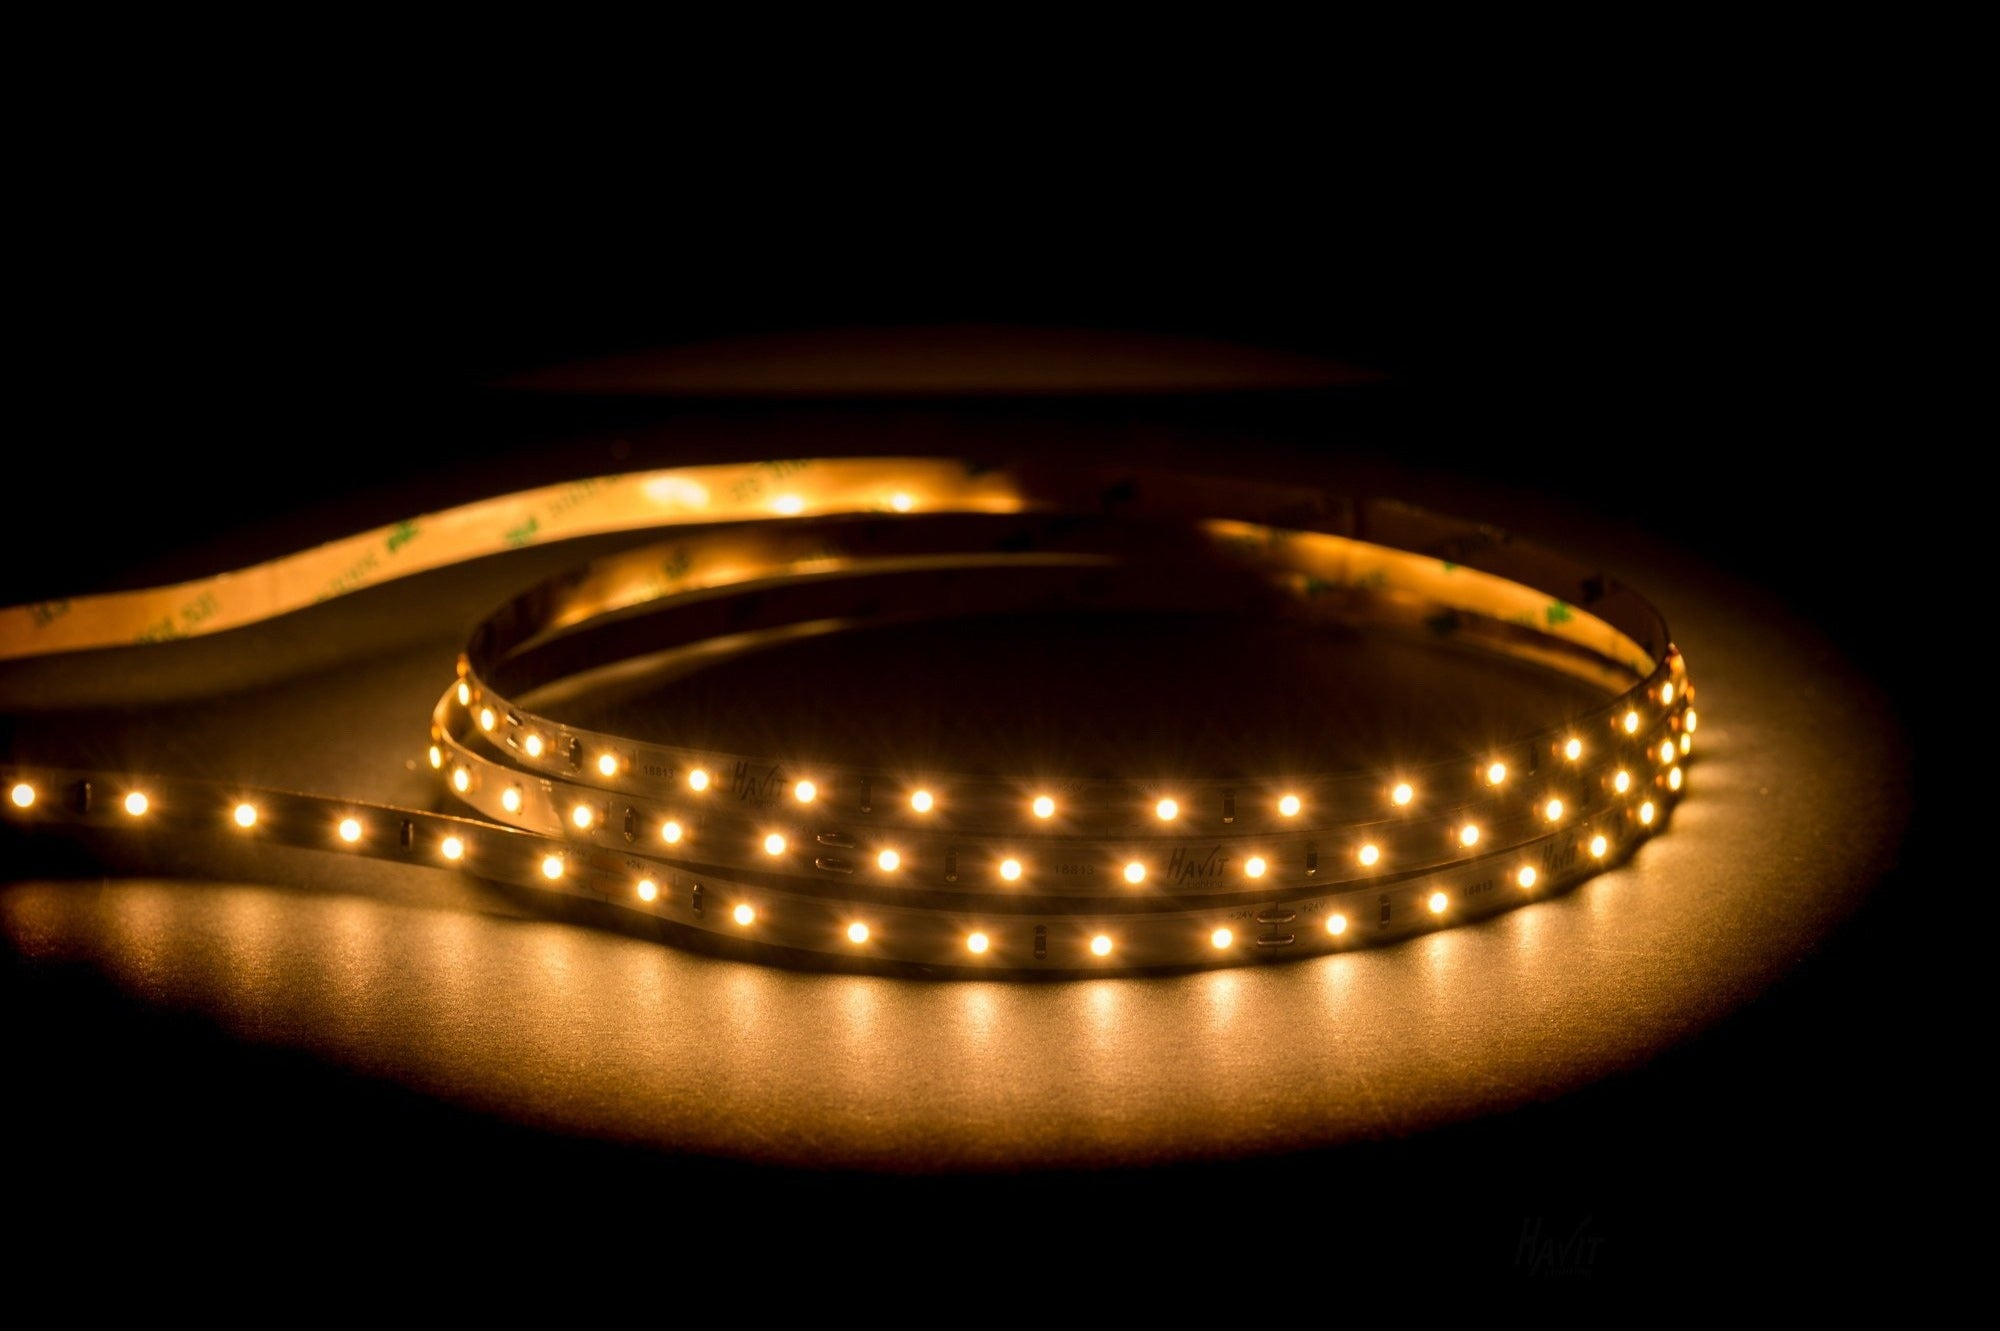 HV9741-IP20-60-3K - 4.8w 24v DC IP20 Long Run LED Strip 3000k